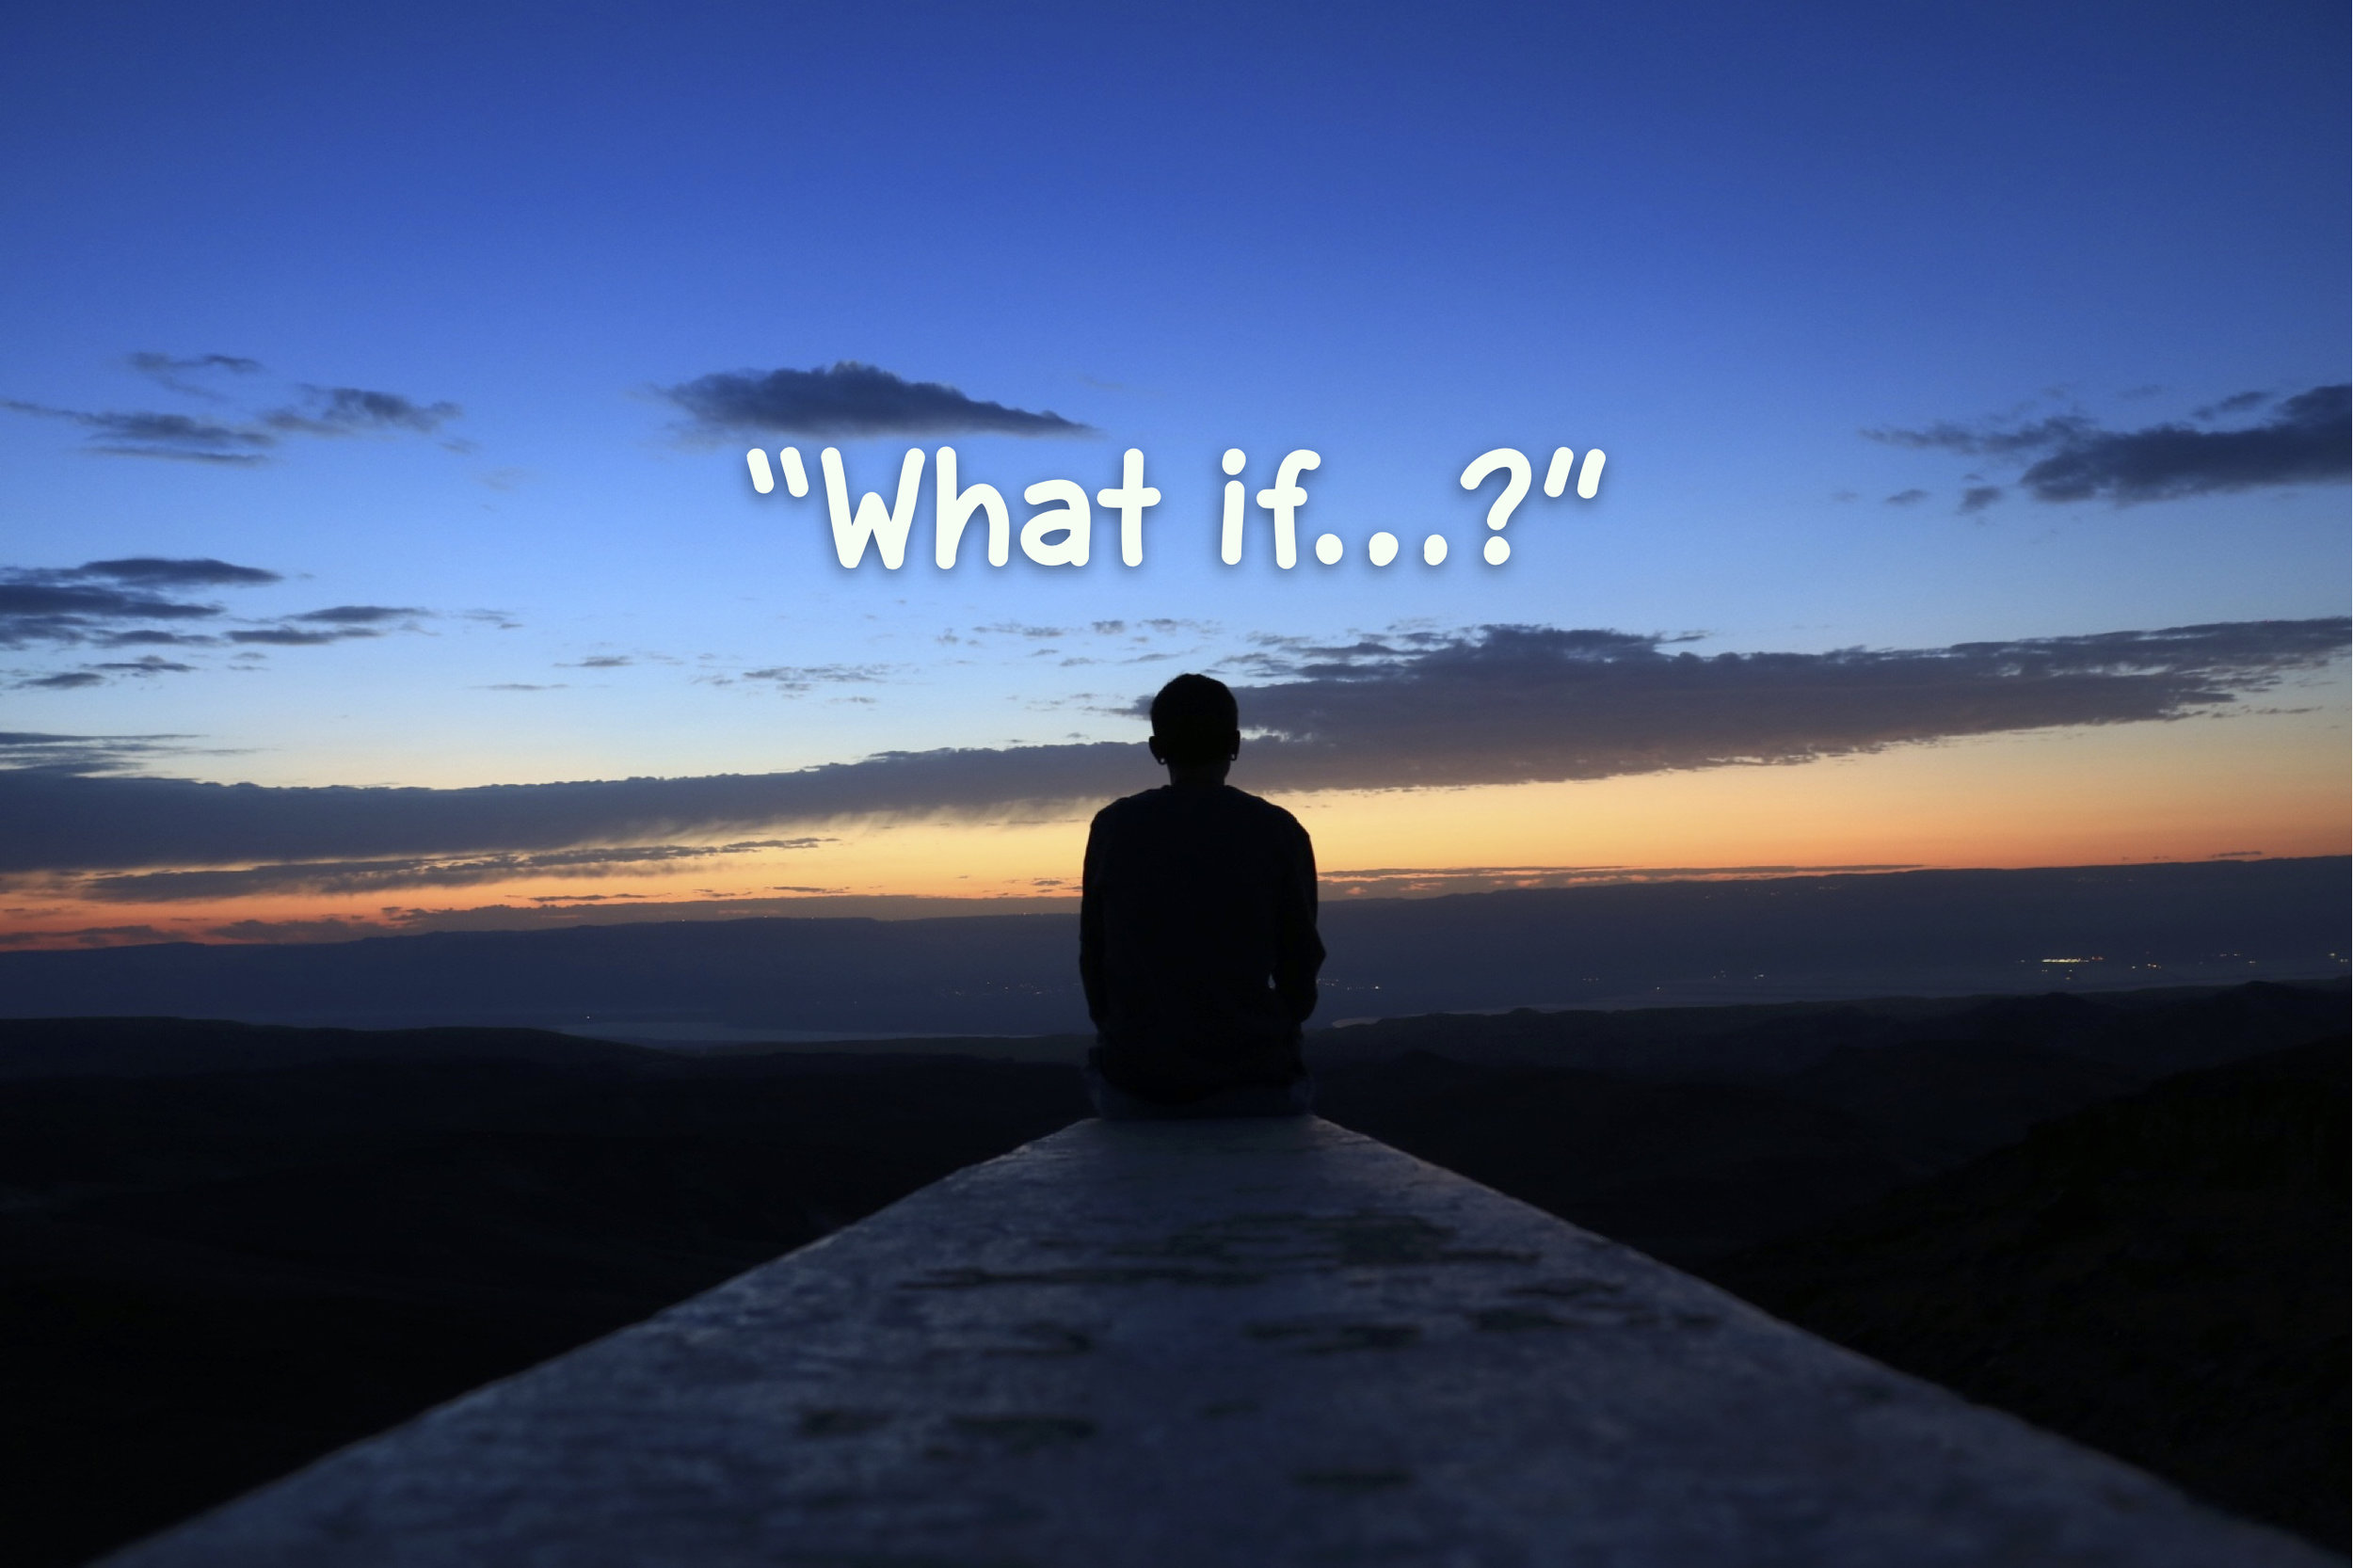 What if?.jpg